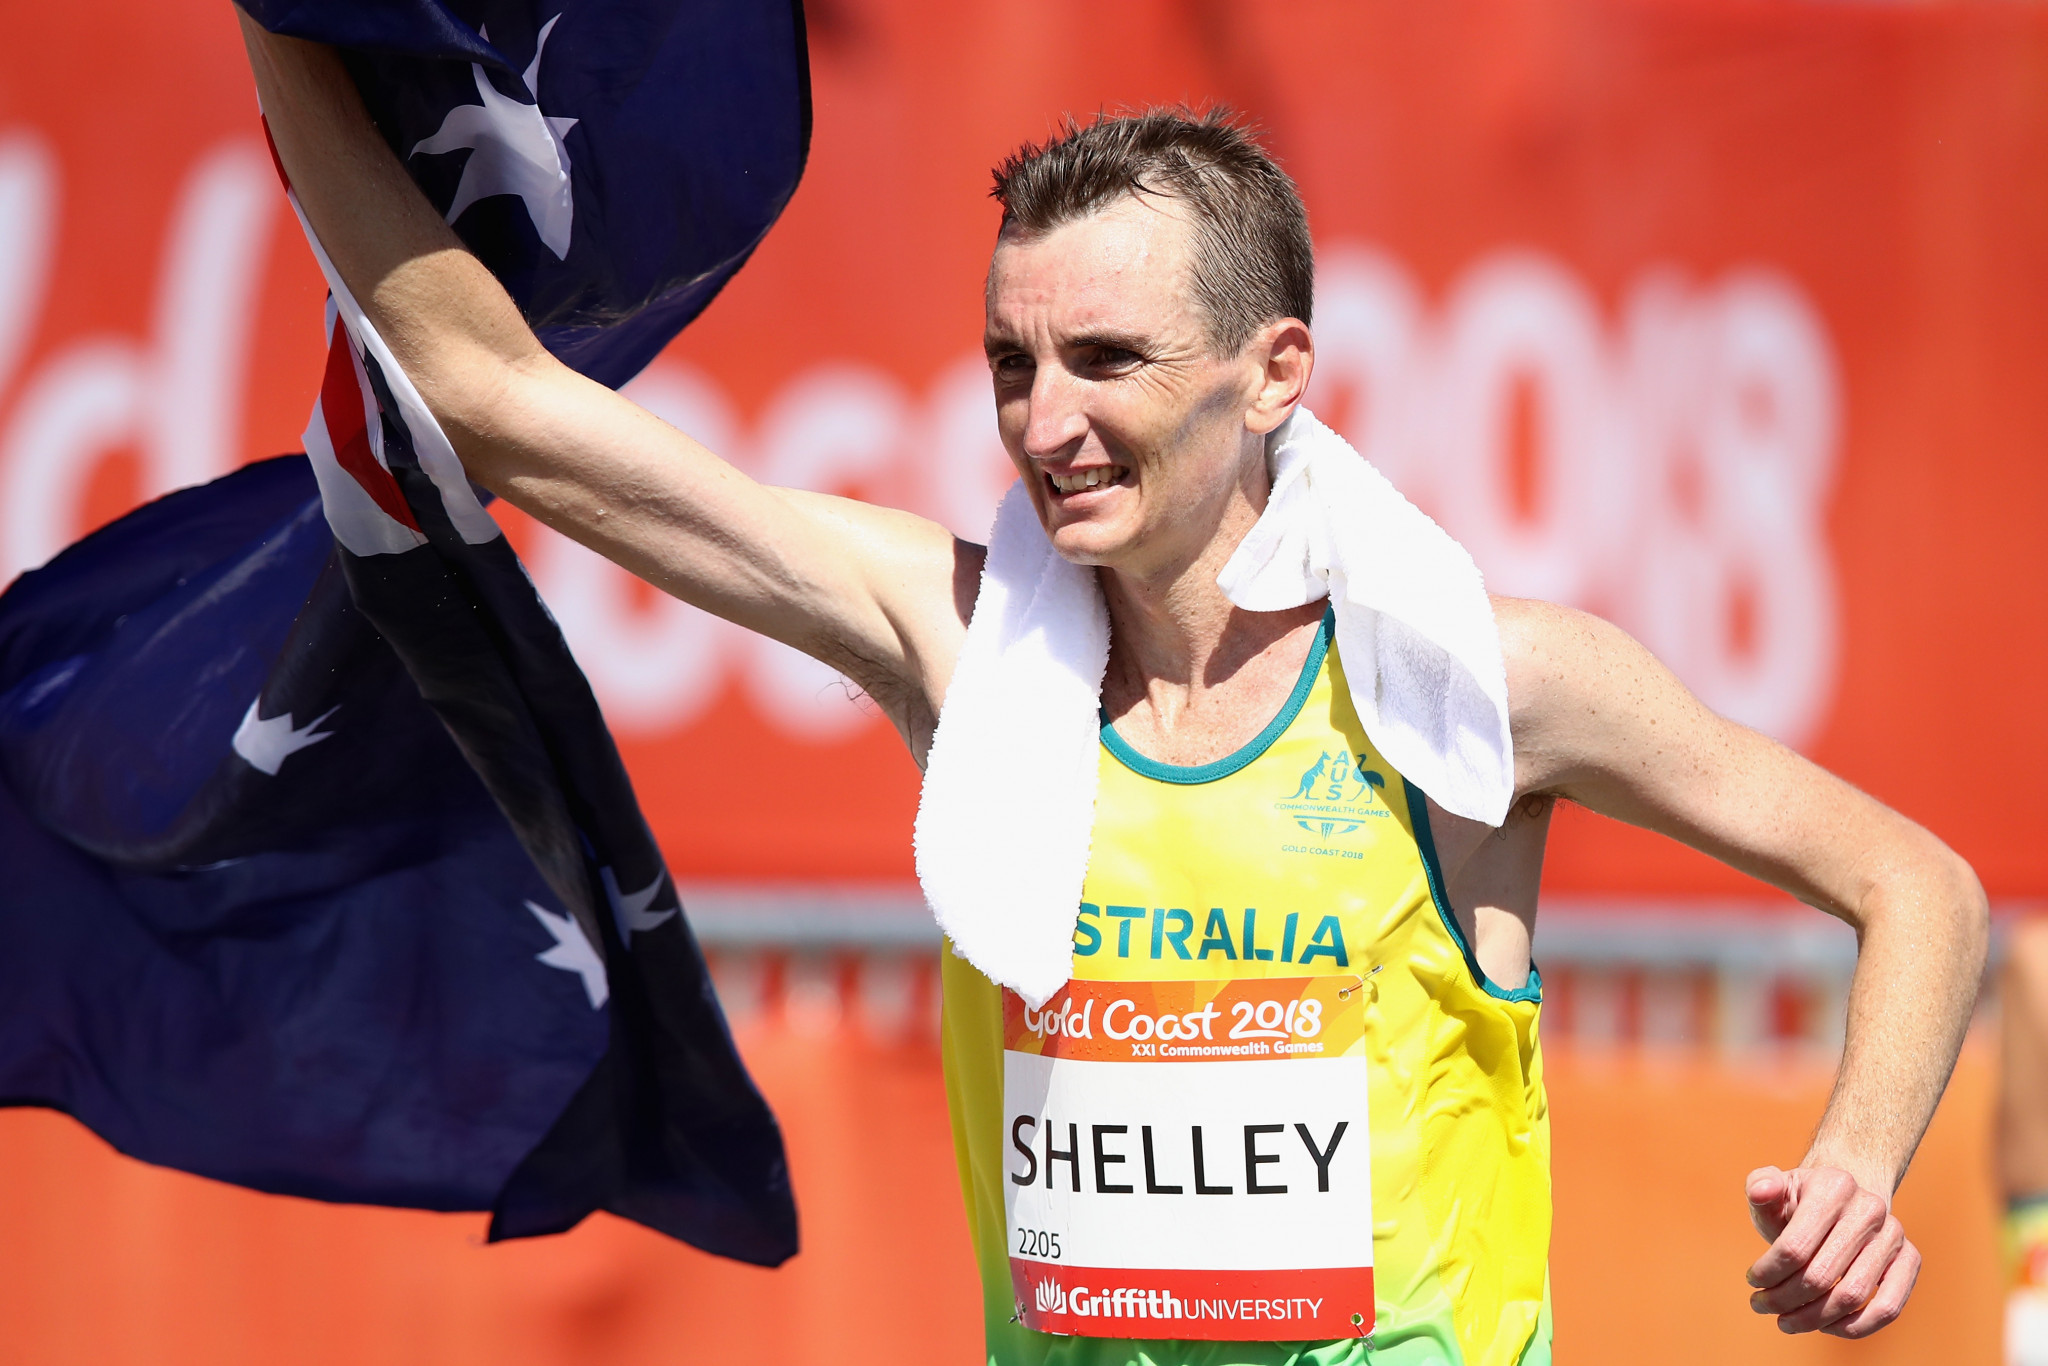 Australia's Chef de Mission Steve Moneghetti has defended Michael Shelley against the criticism he received after his victory in the Commonwealth Games marathon ©Getty Images